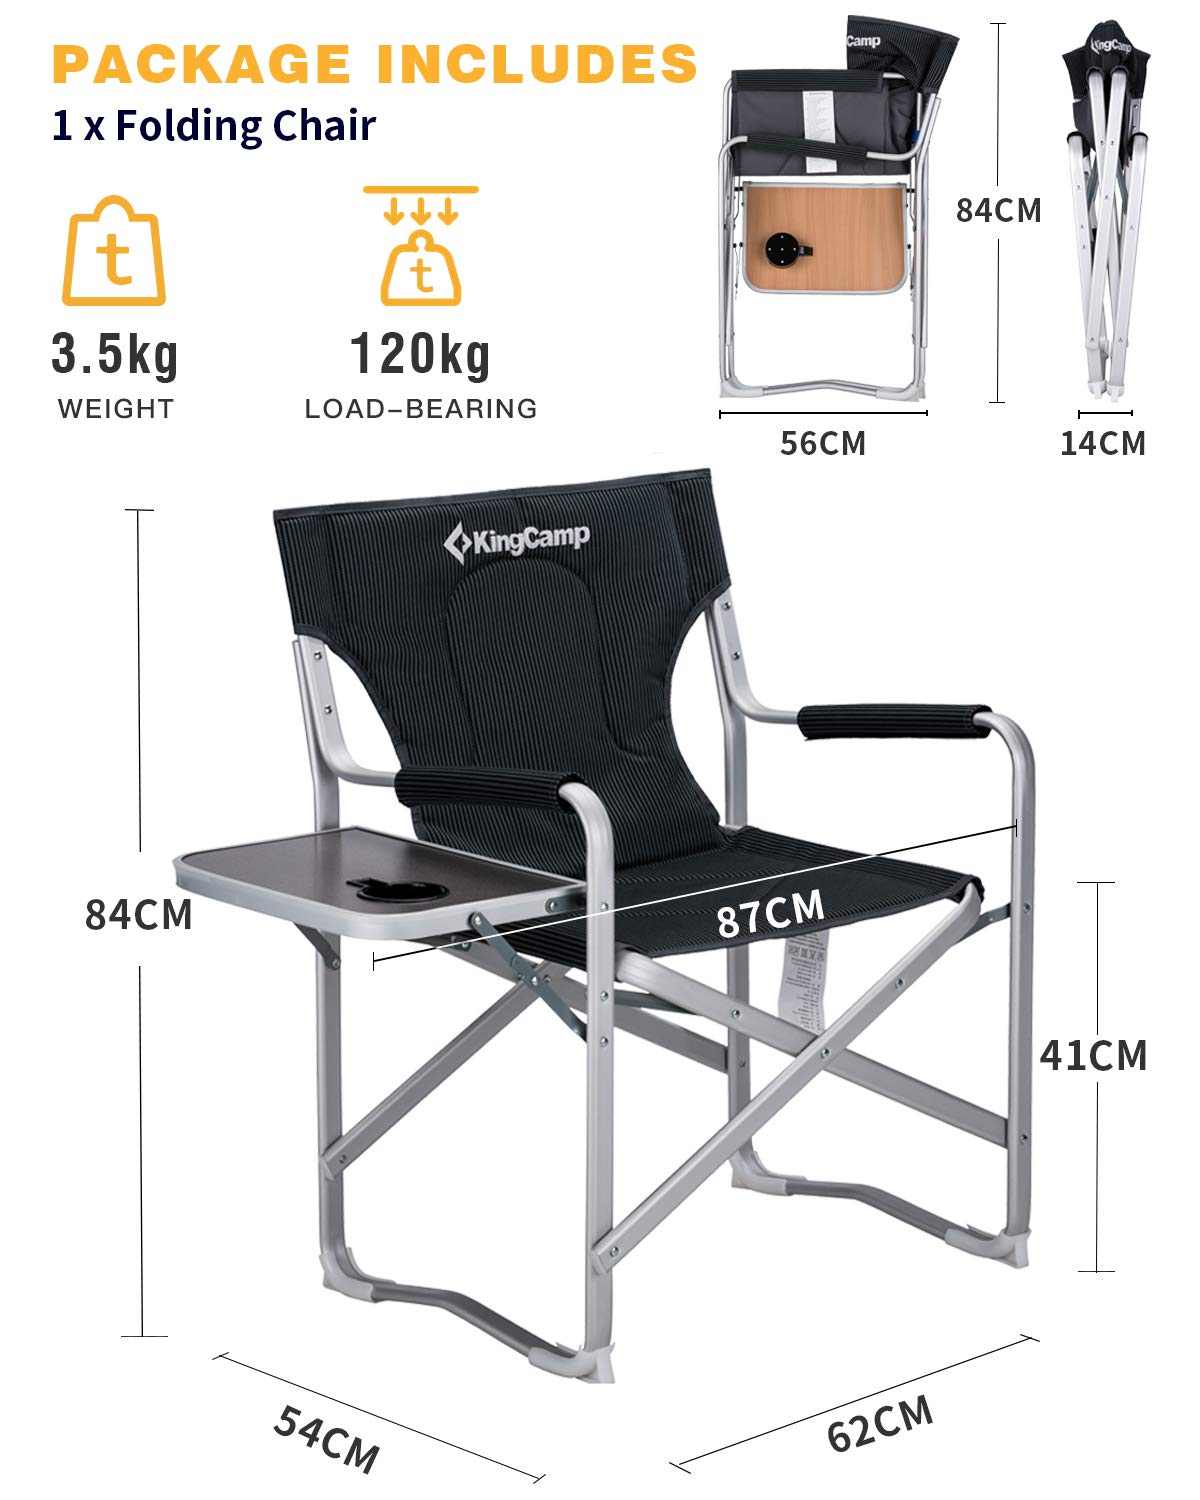 KingCamp Director Camping Chair Portable Folding Aluminum Padded Heavy Duty Comfort with Armrest Side Table and Cup Holder Supports 120kg